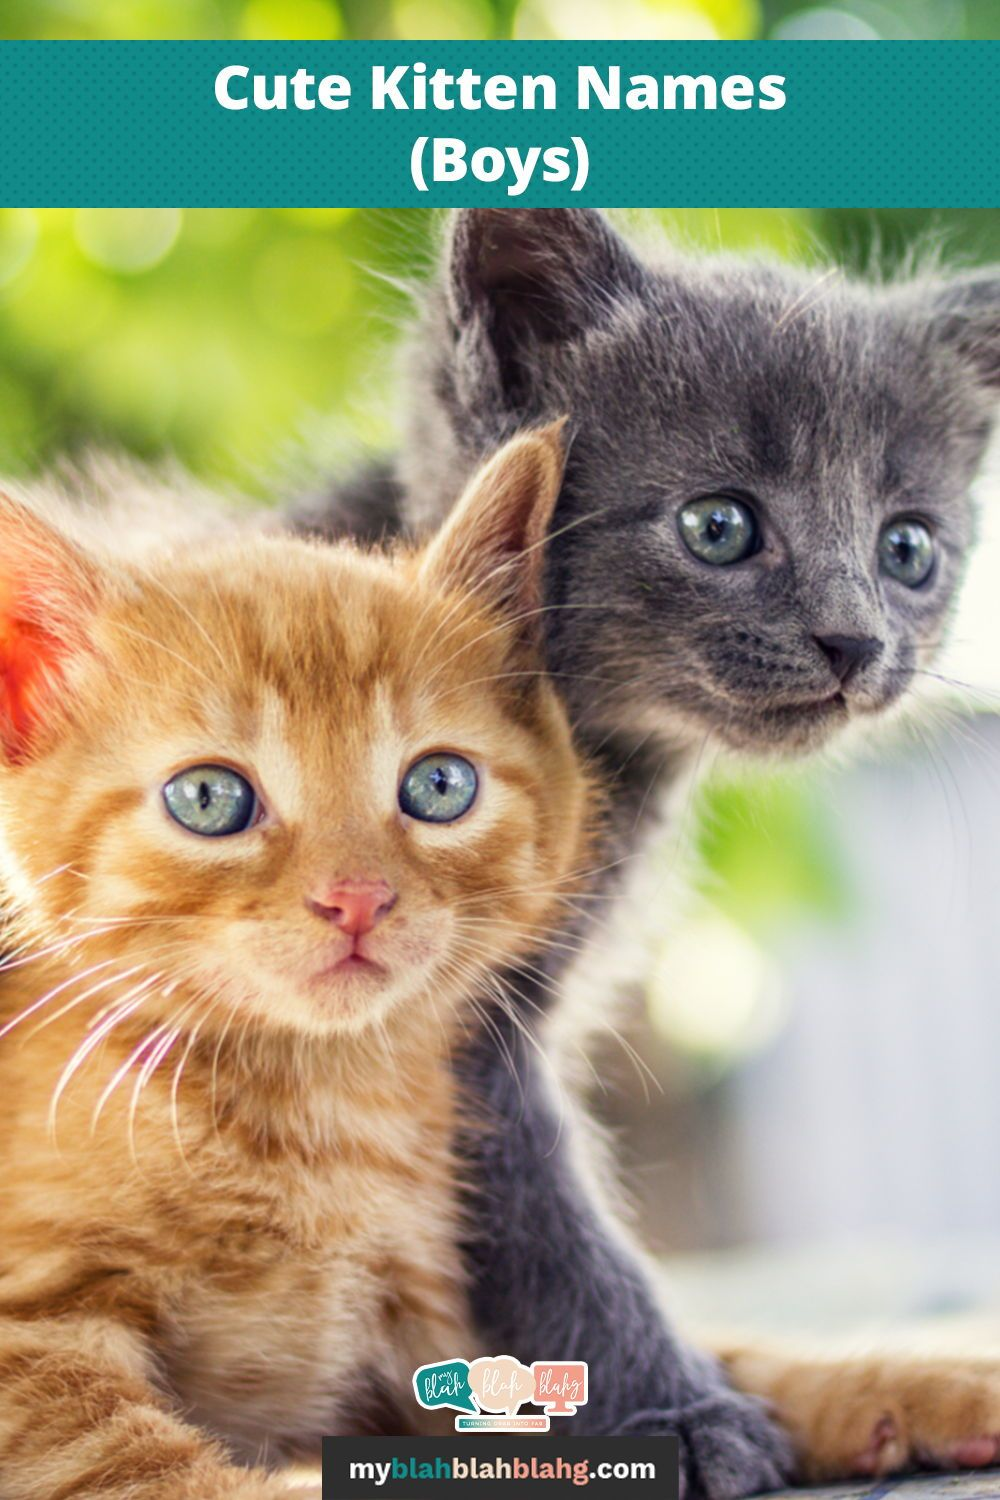 Cute Boy Kitten Names In 2020 Kitten Names Kitten Names Boy Kittens Cutest